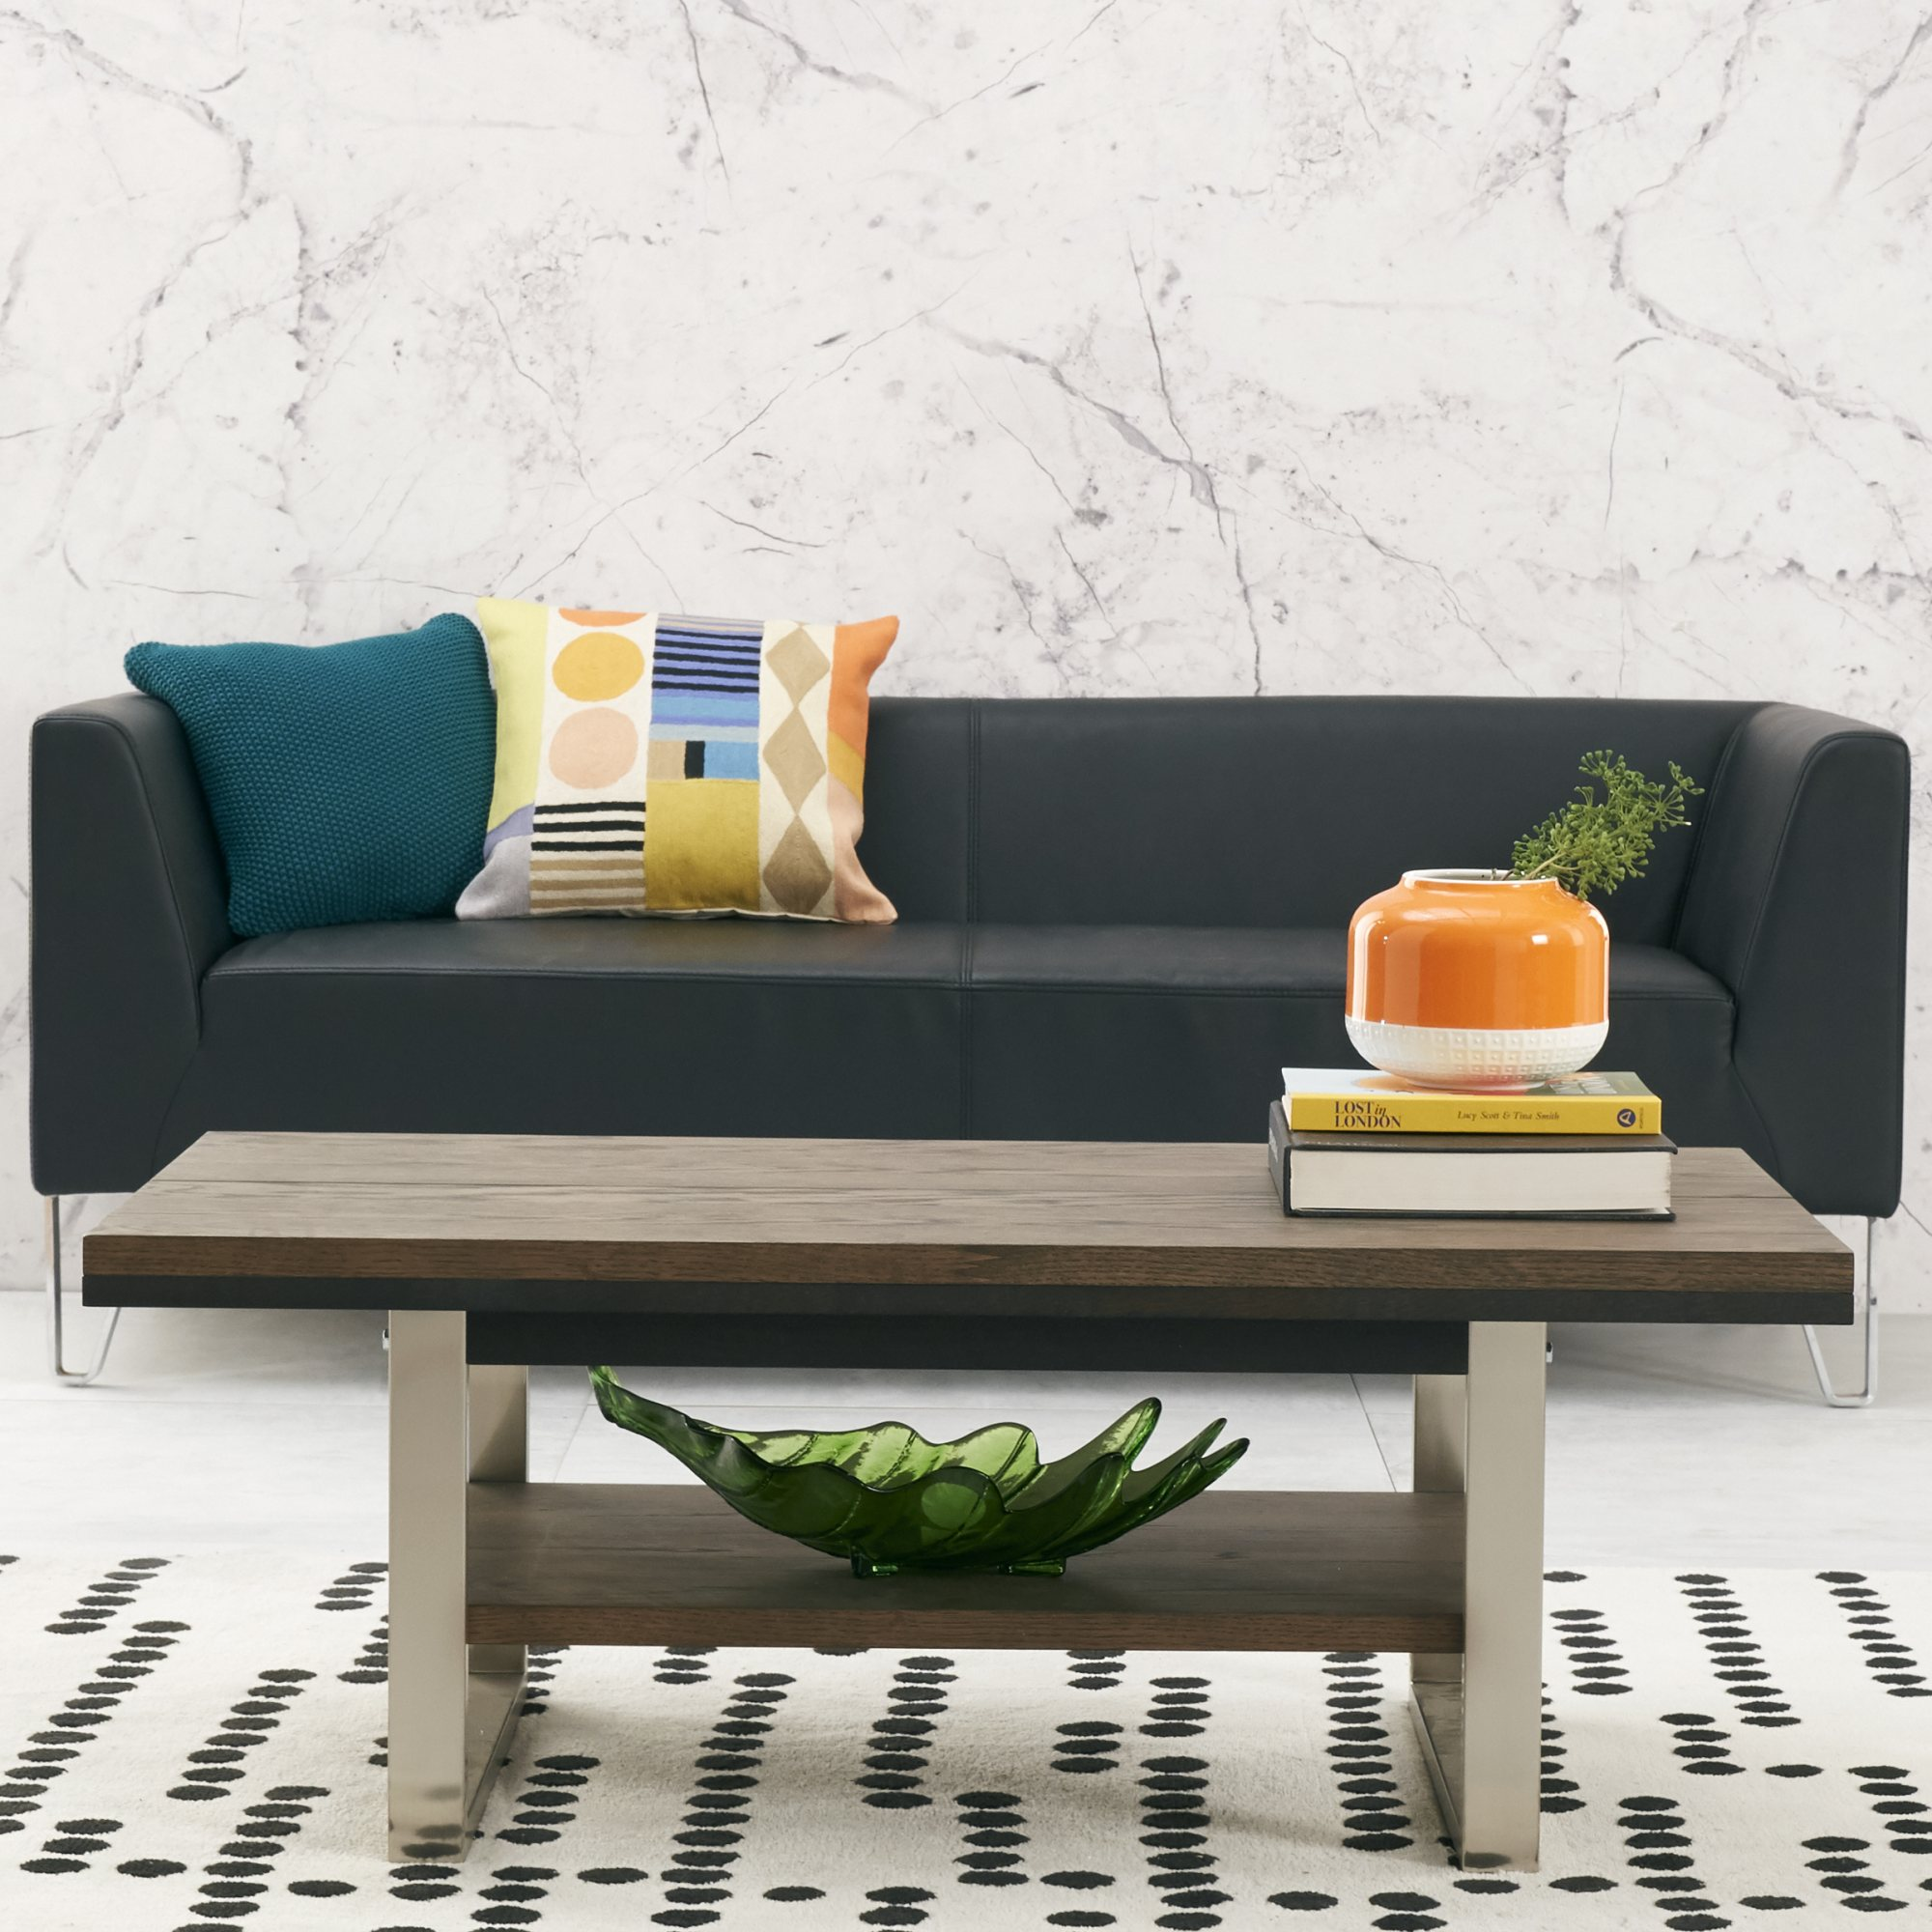 BRINDISI COFFEE TABLE L112cm x D60cm x H45cm